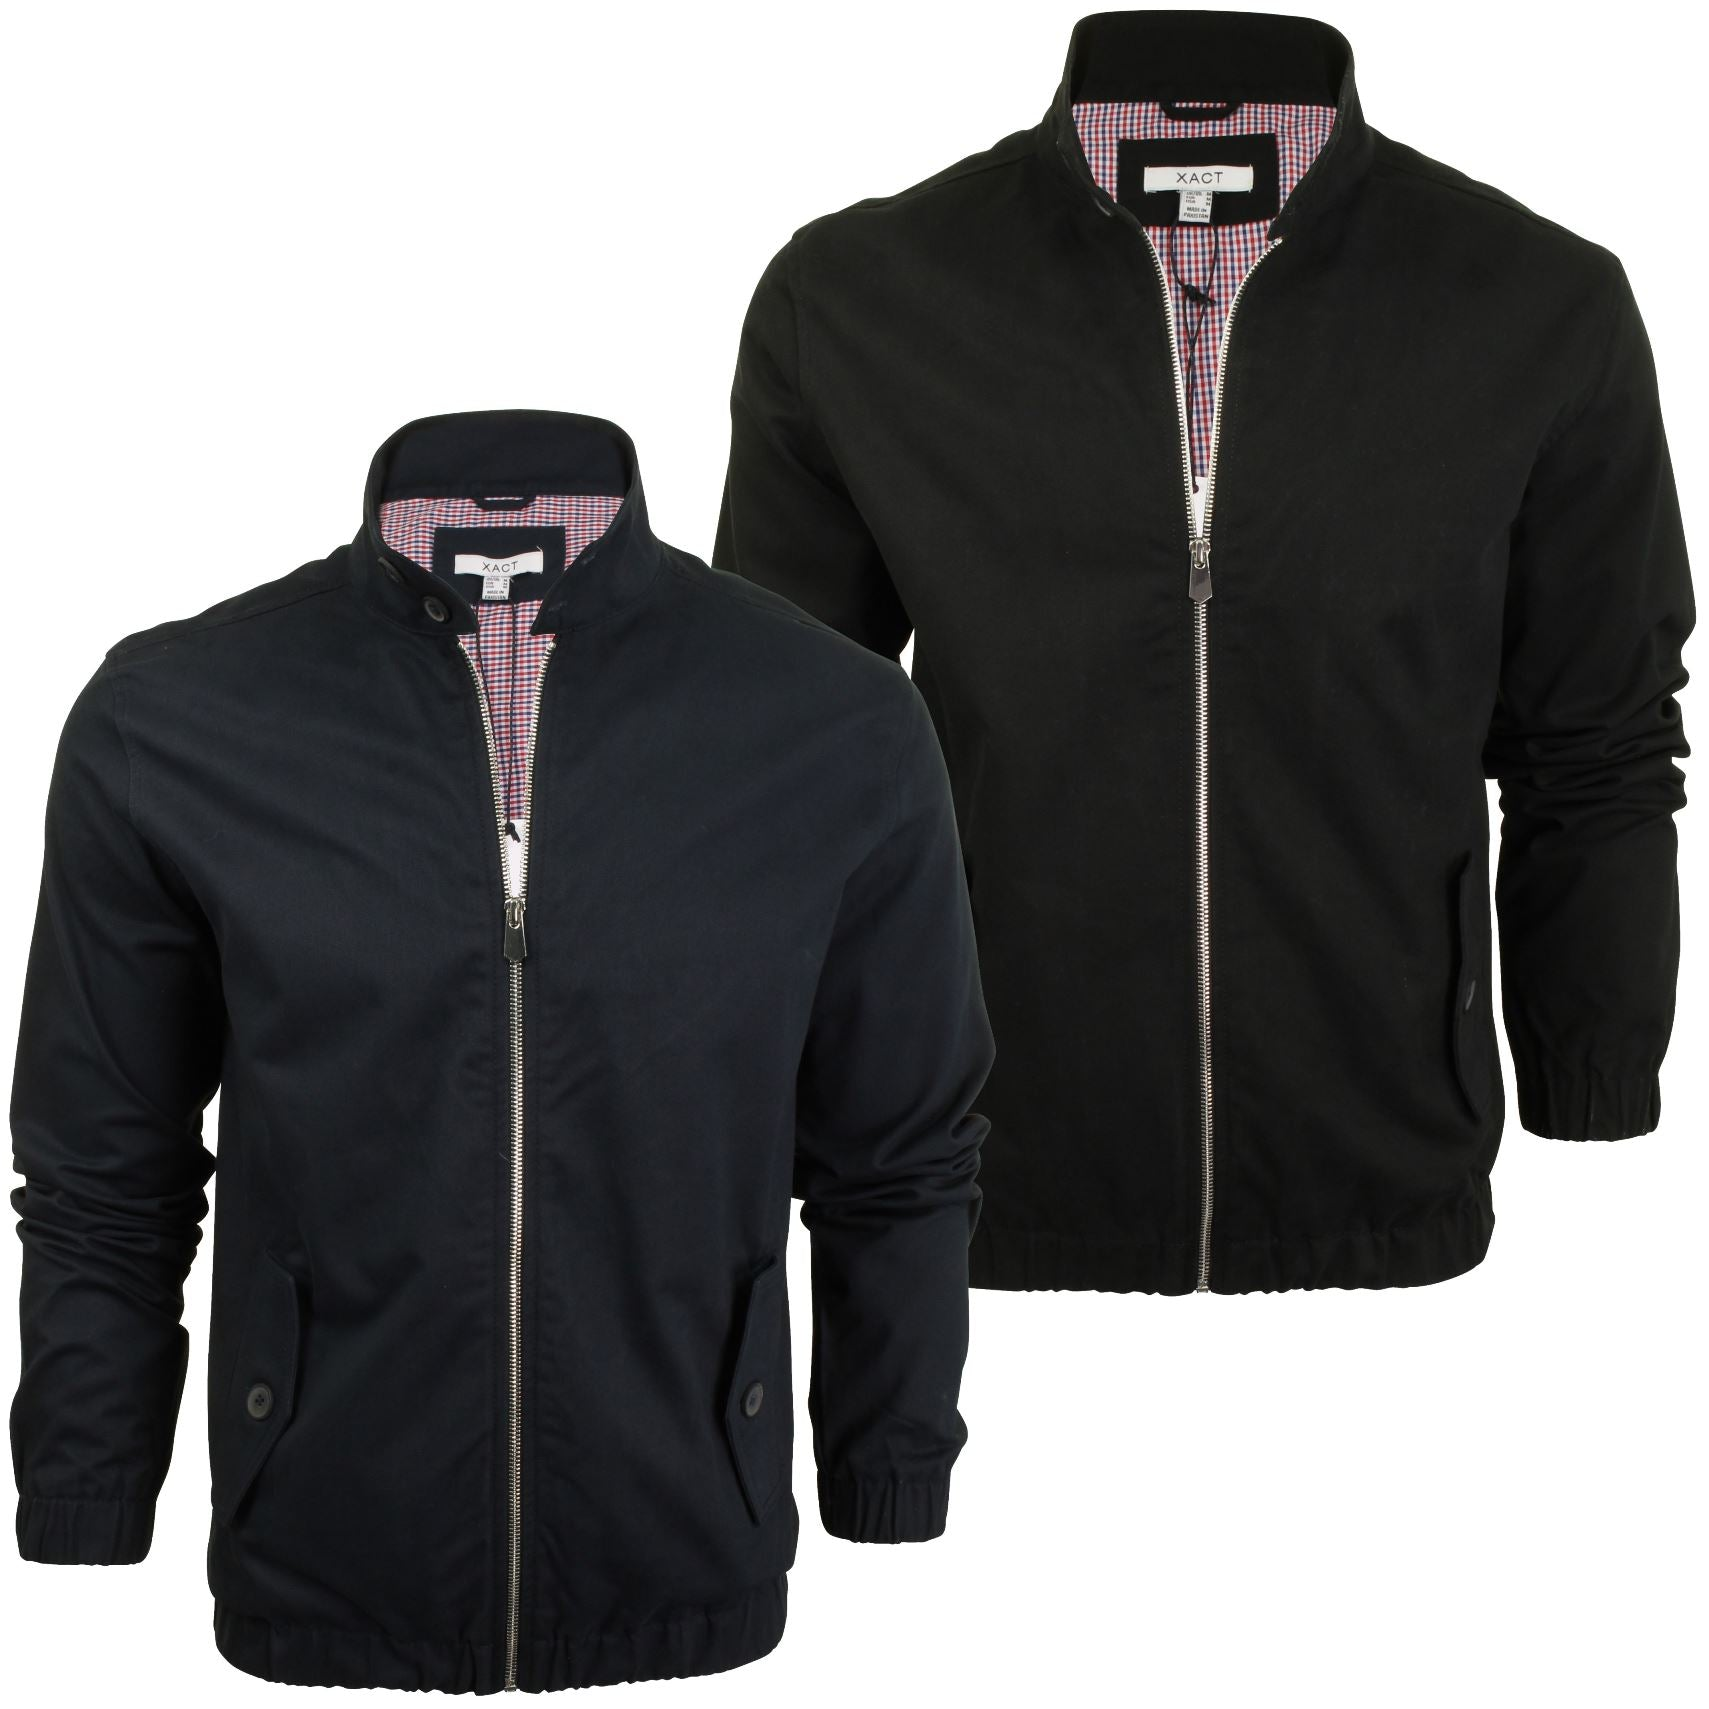 Xact Mens Classic Harrington Jacket Coat MOD-Main Image